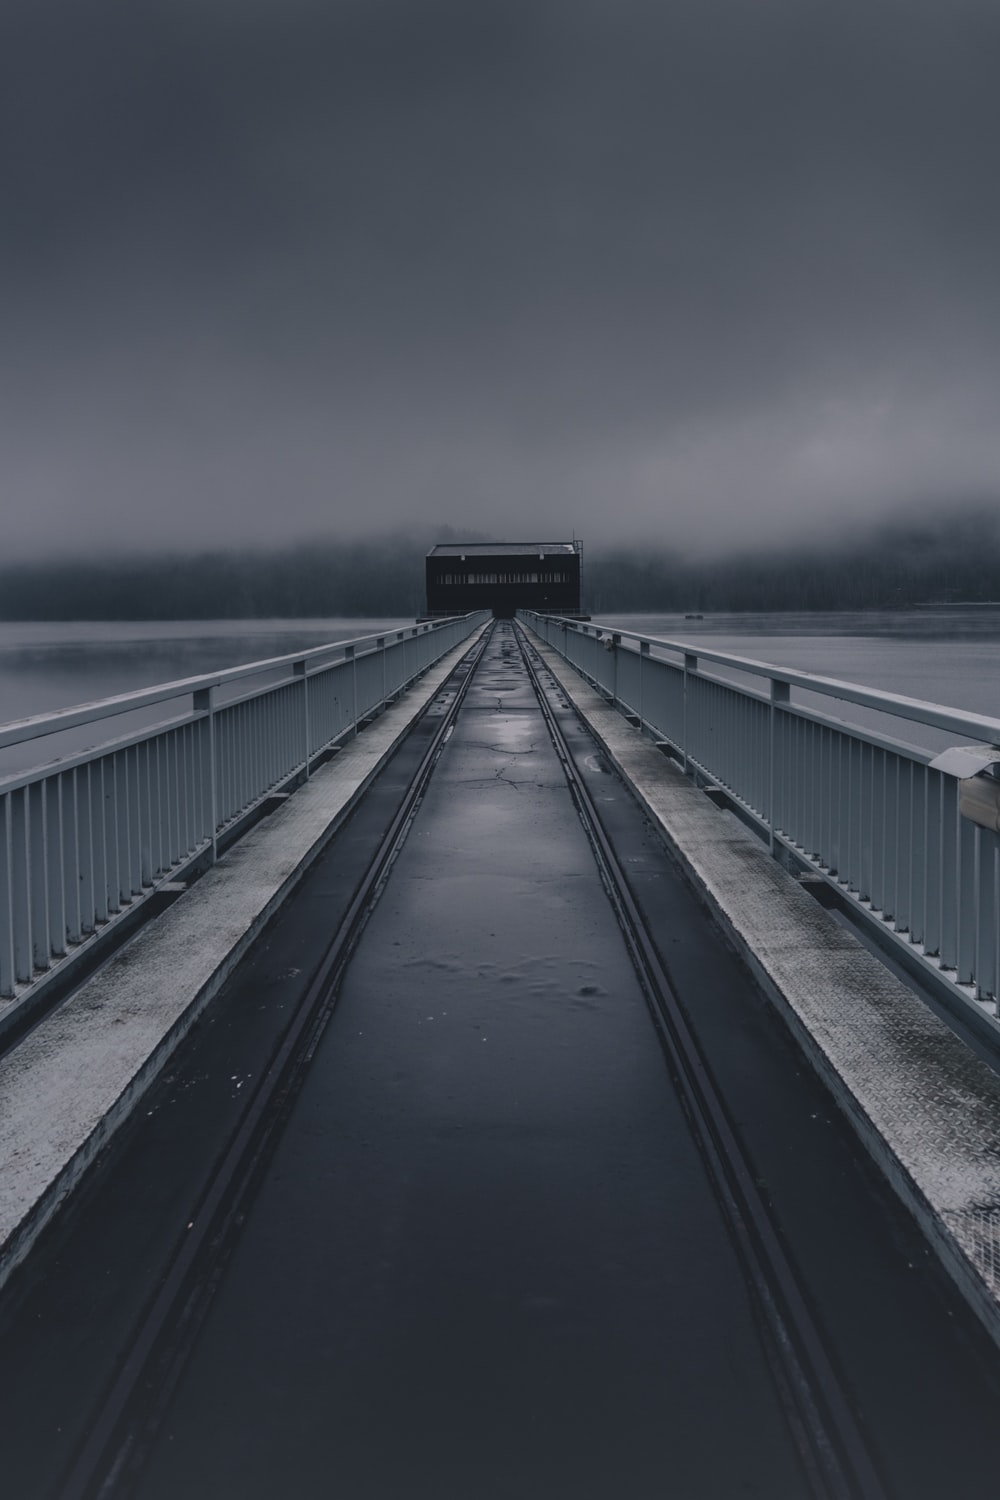 bridge under rainy weather